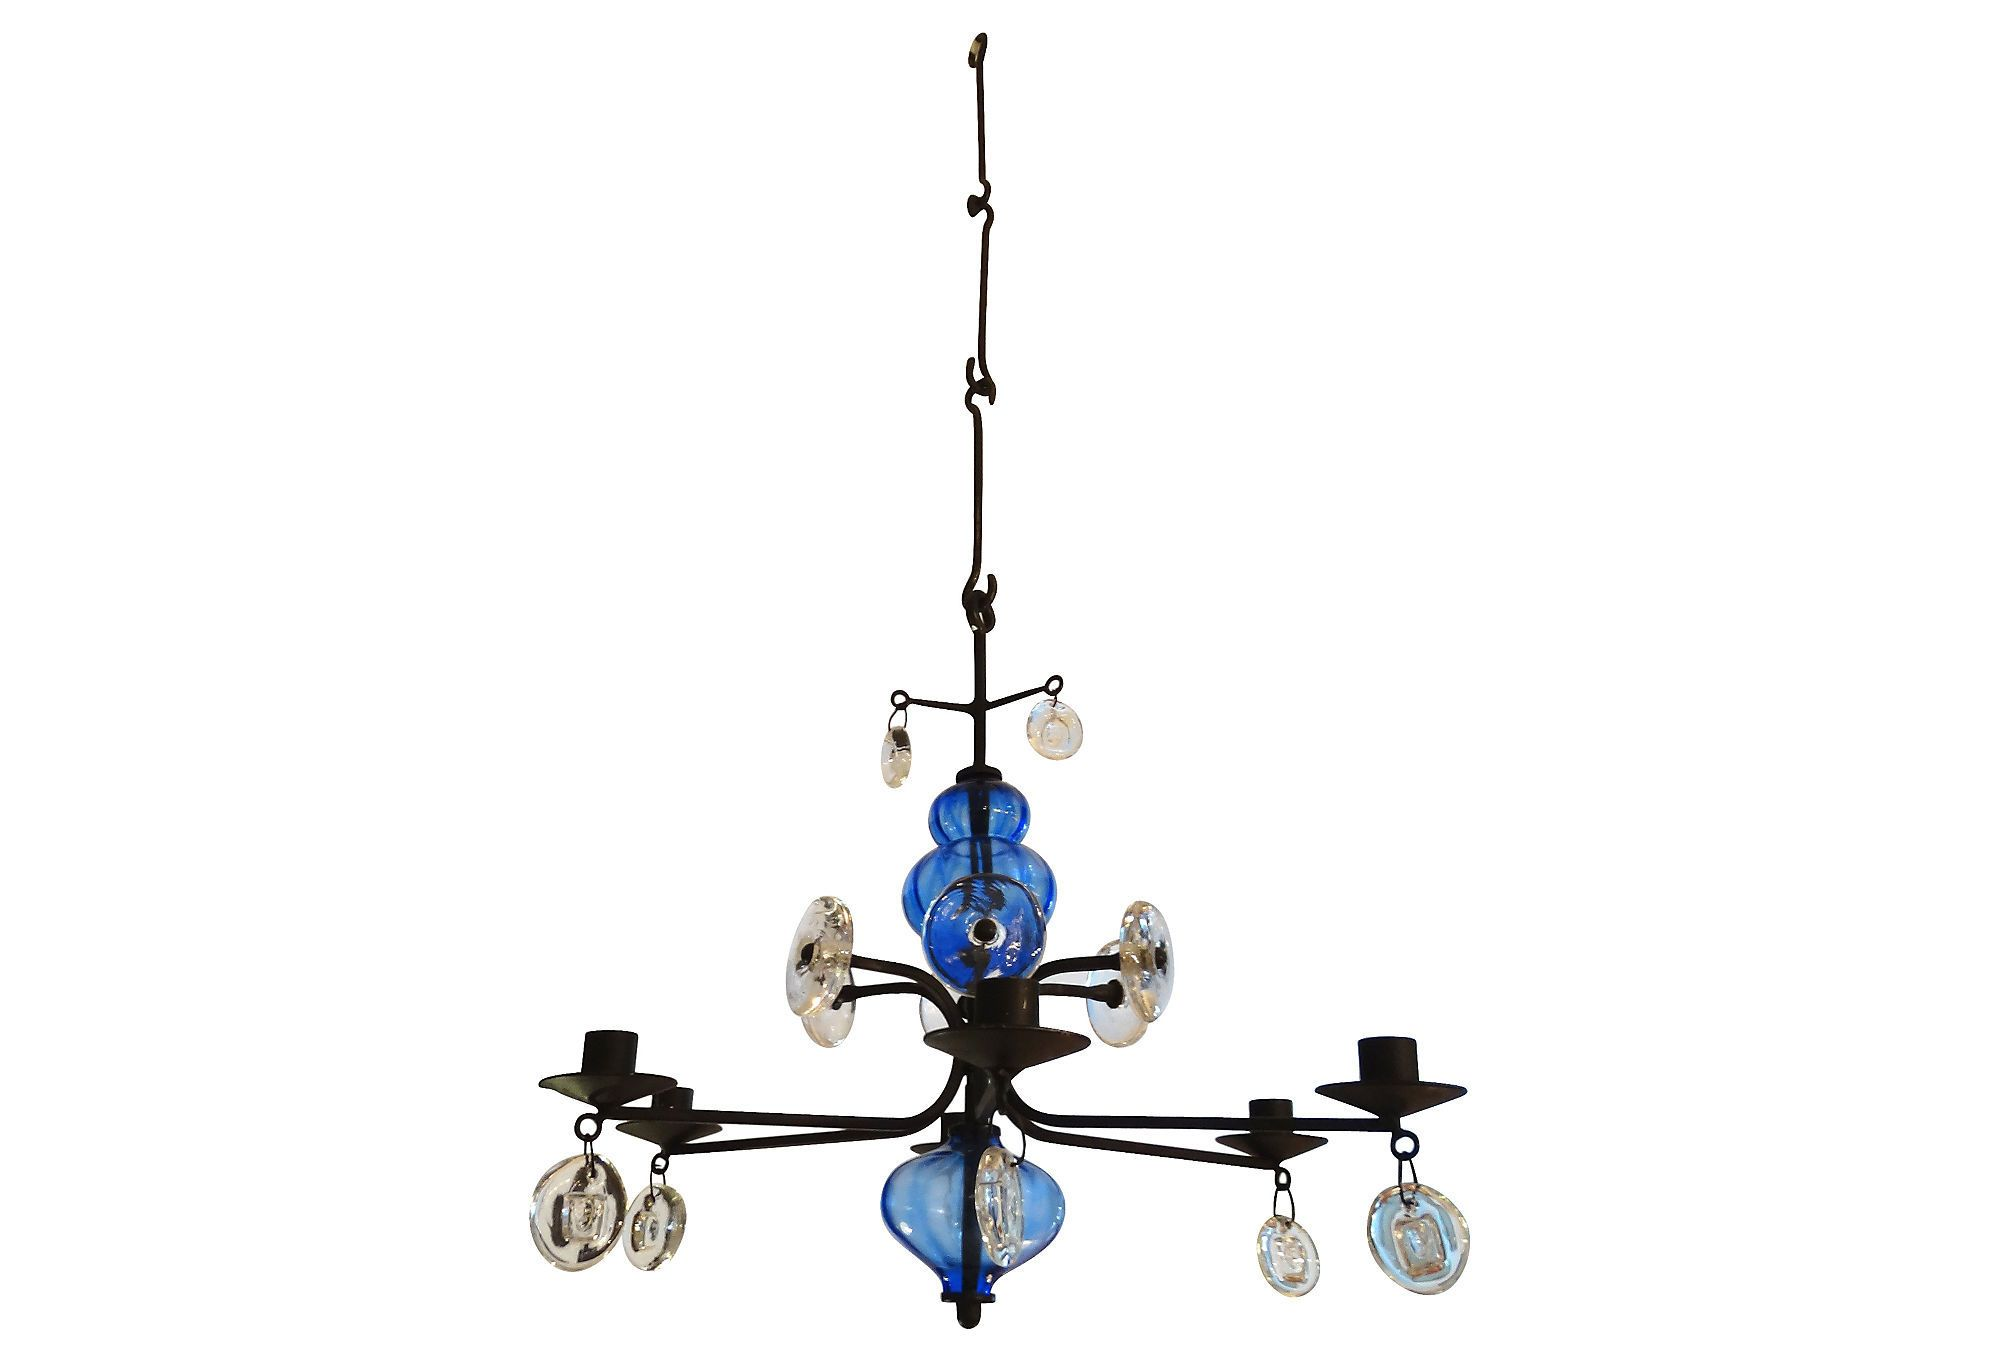 Forged Iron Amp Glass Chandelier By Erik Hoglund For Boda